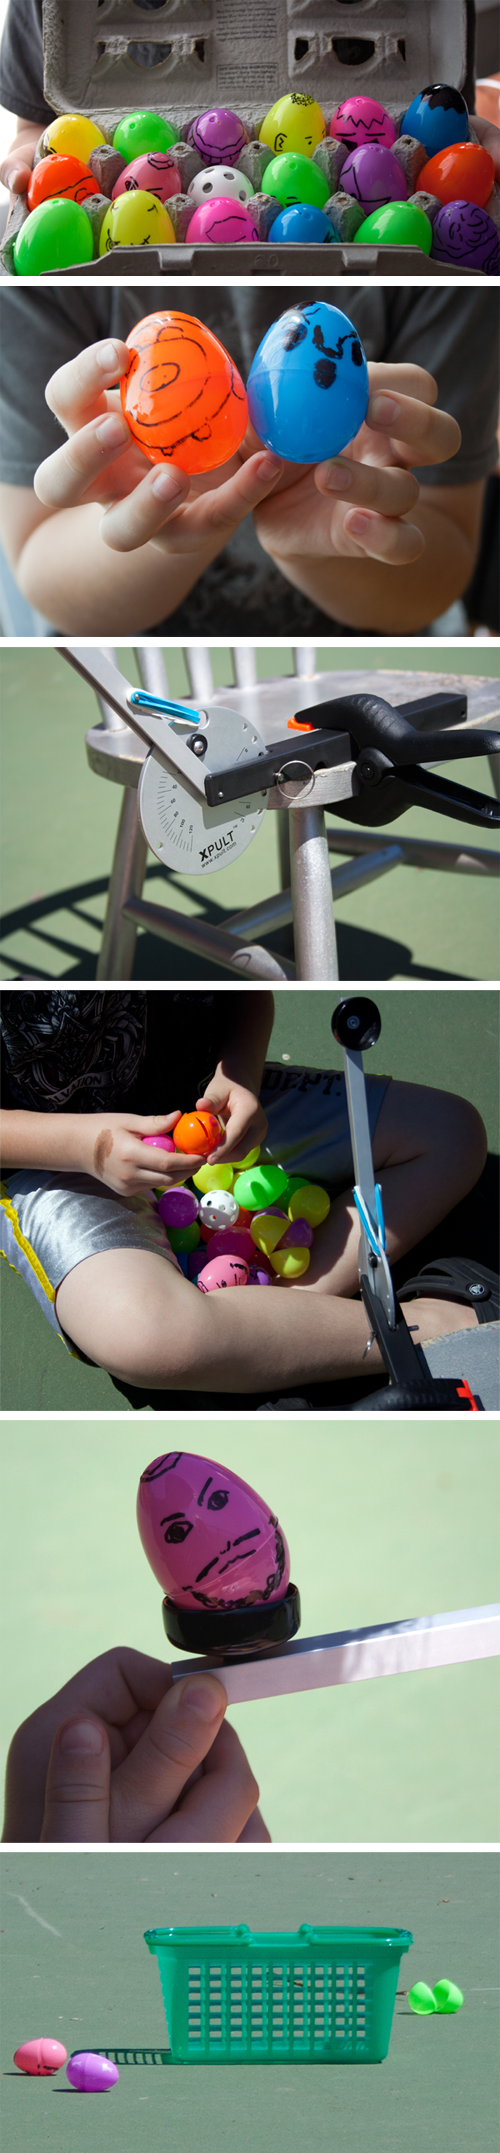 Ping Pong Catapult with Plastic Eggs experiment / family science activity